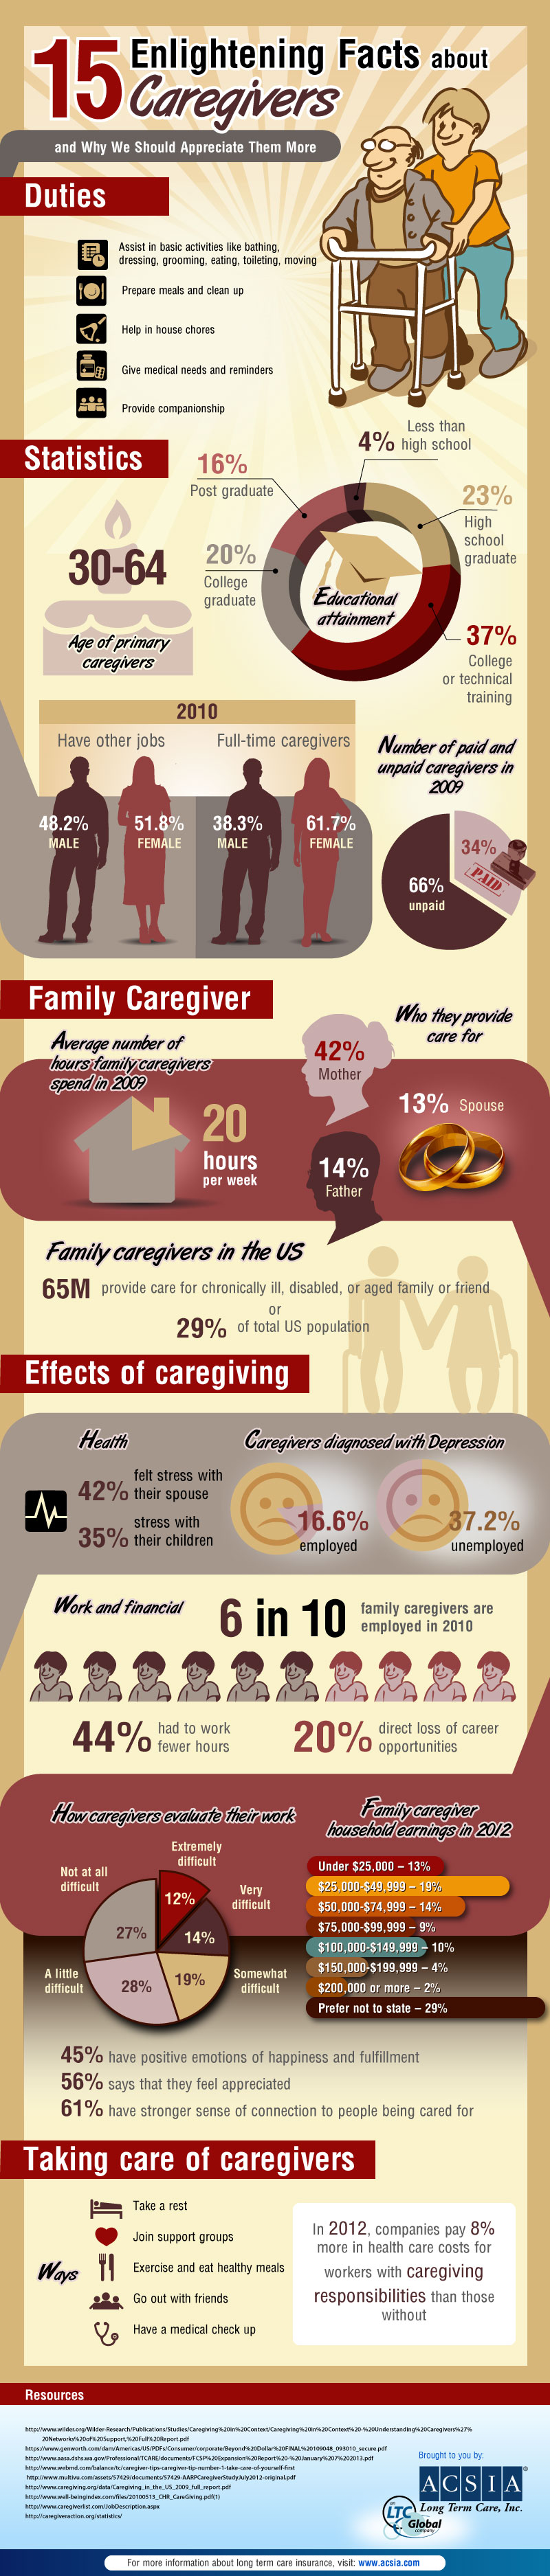 Caregiver Duties and Other Enlightening Facts About Caregivers